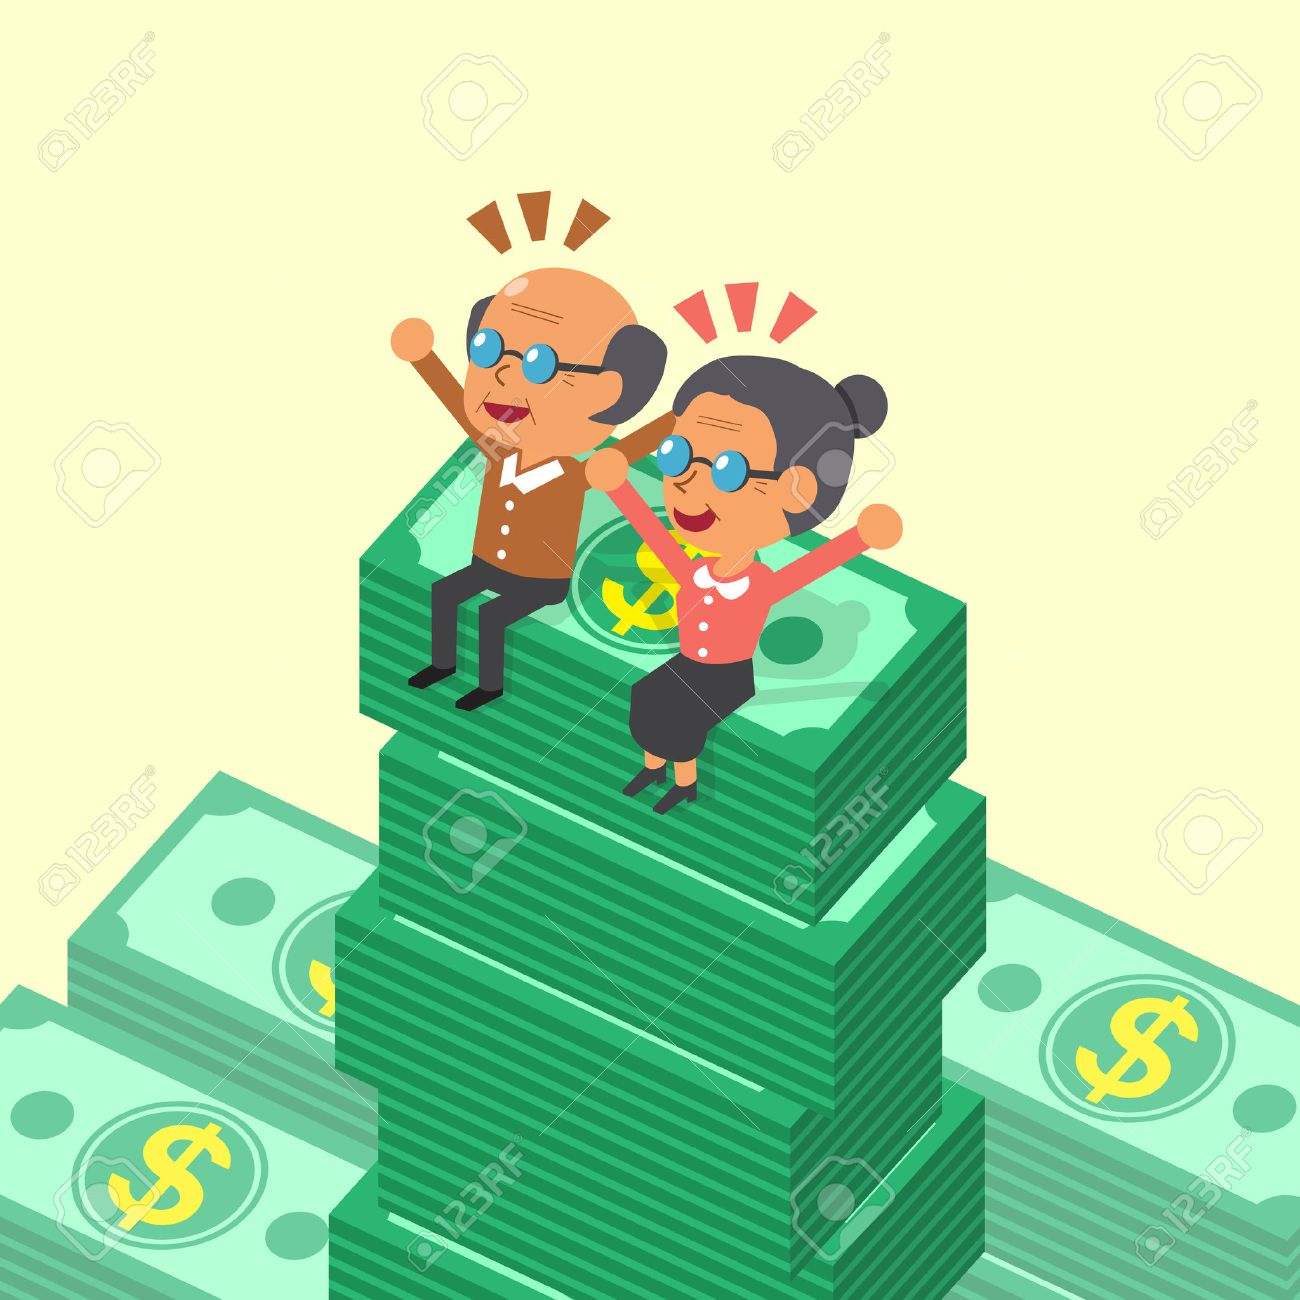 Cartoon old man and old woman sitting on money stacks - 47825352